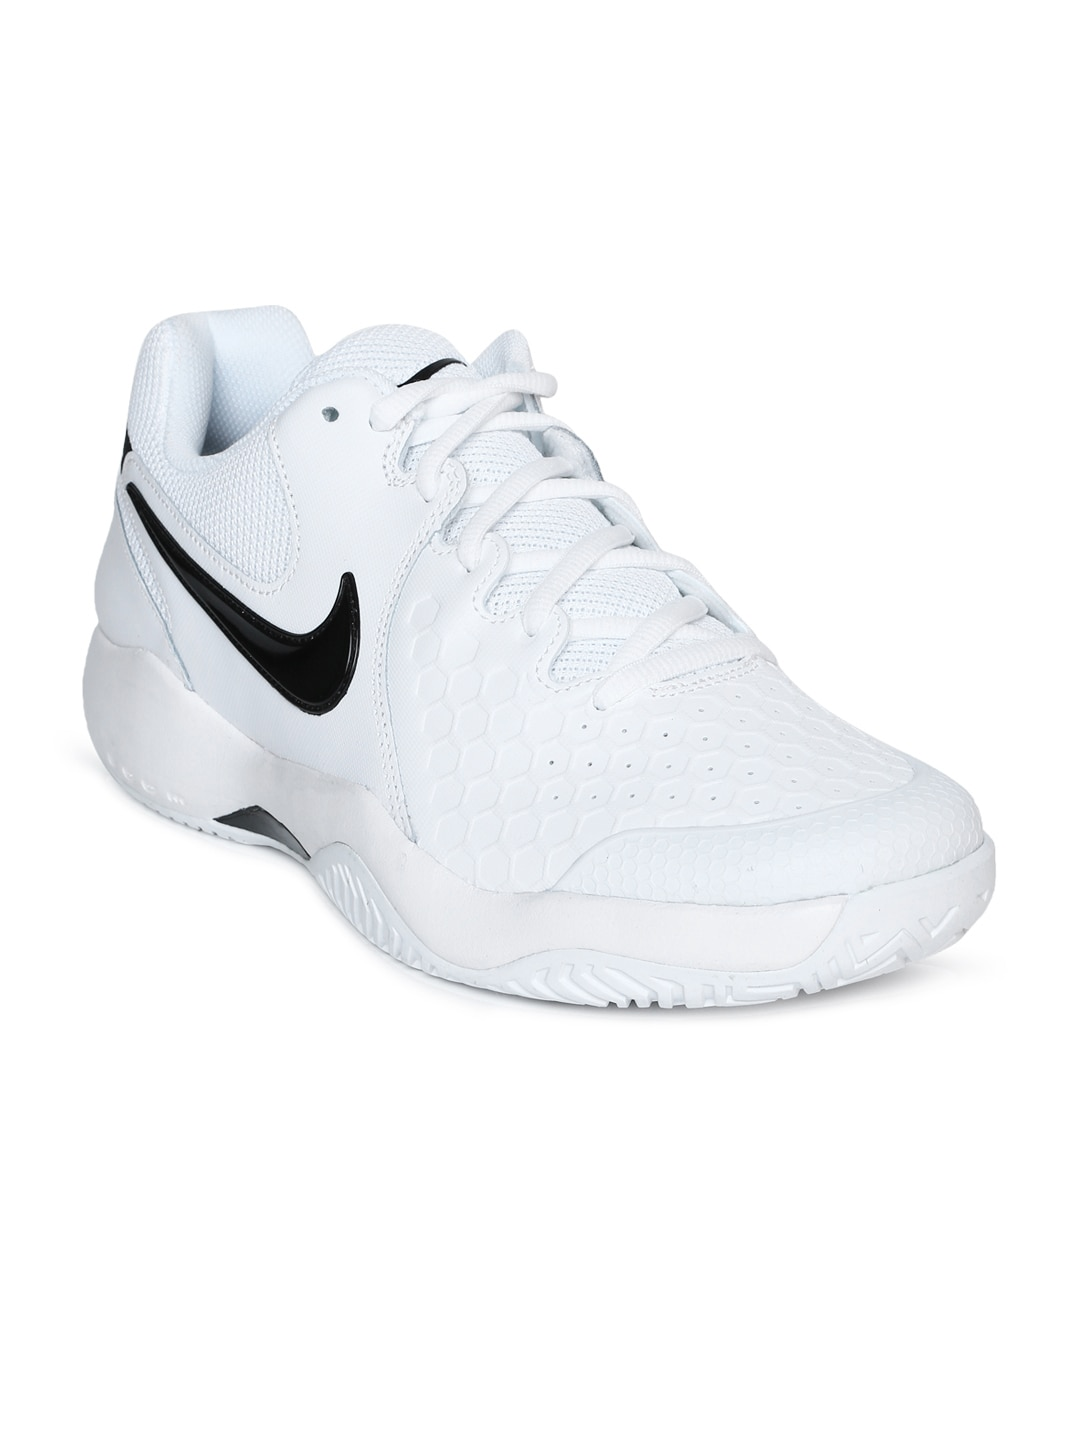 2a8d301cfa00 Nike Air White Shoes - Buy Nike Air White Shoes online in India